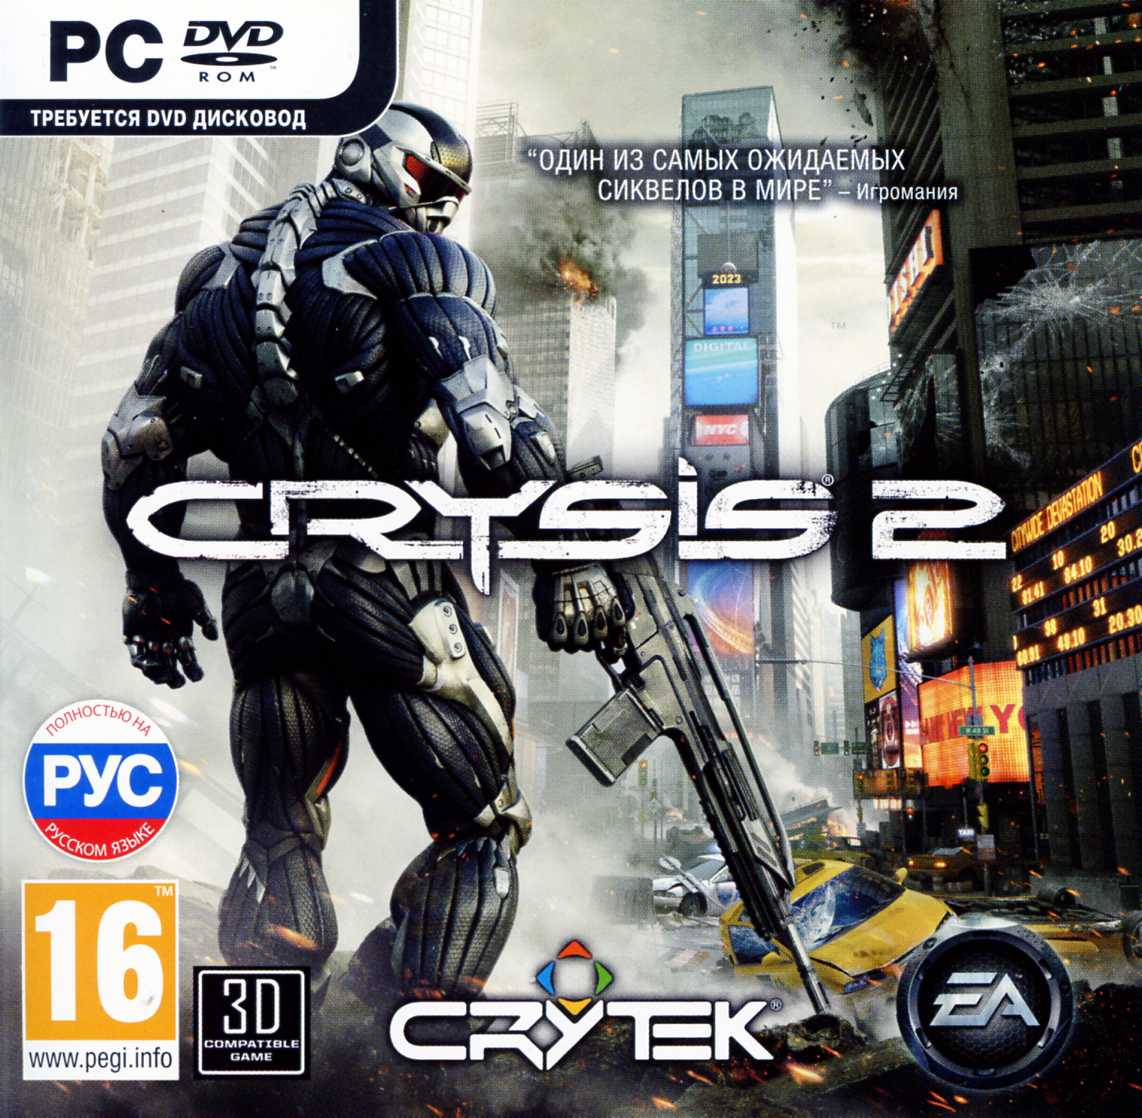 Crysis 2 CD-KEY.